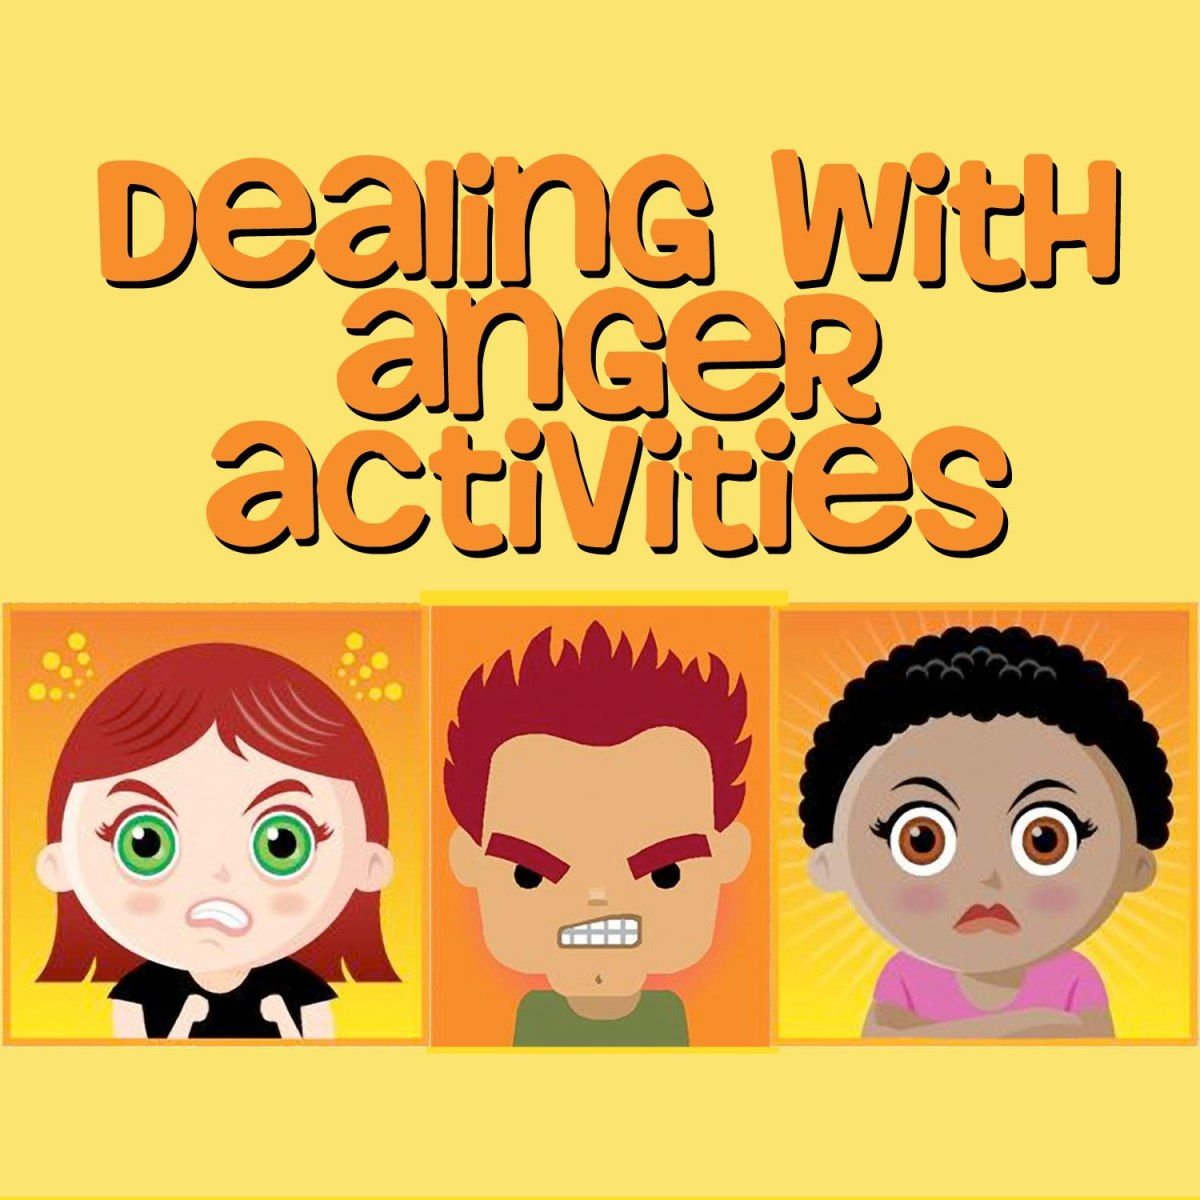 My Students Often Have Difficulty Dealing With Anger In